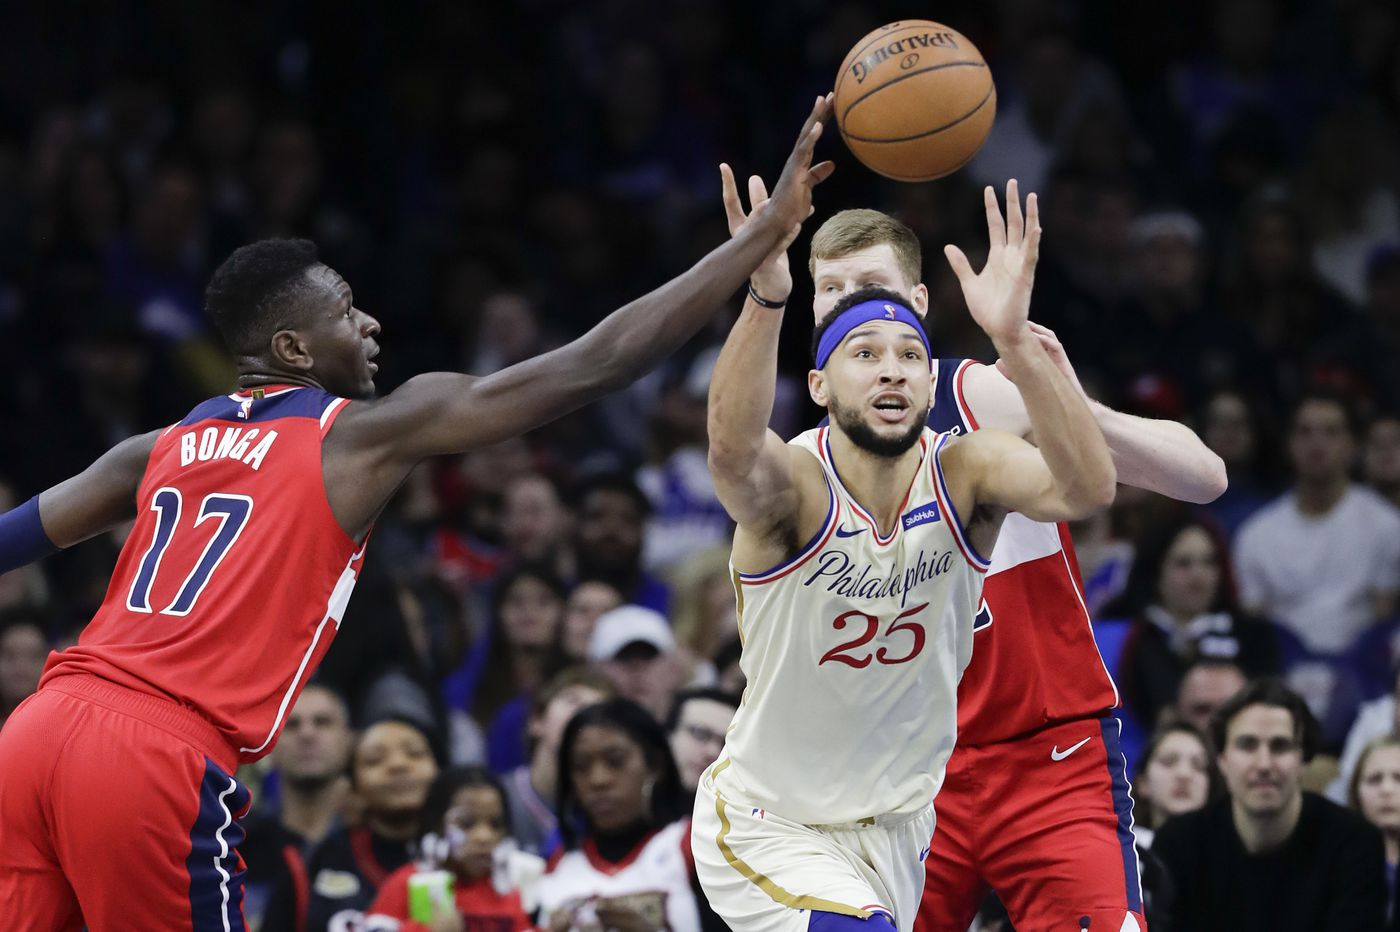 Sixers-Wizards best/worst: Ben Simmons' thievery, Washington's pitiful zone, Philly's foul-shooting woes